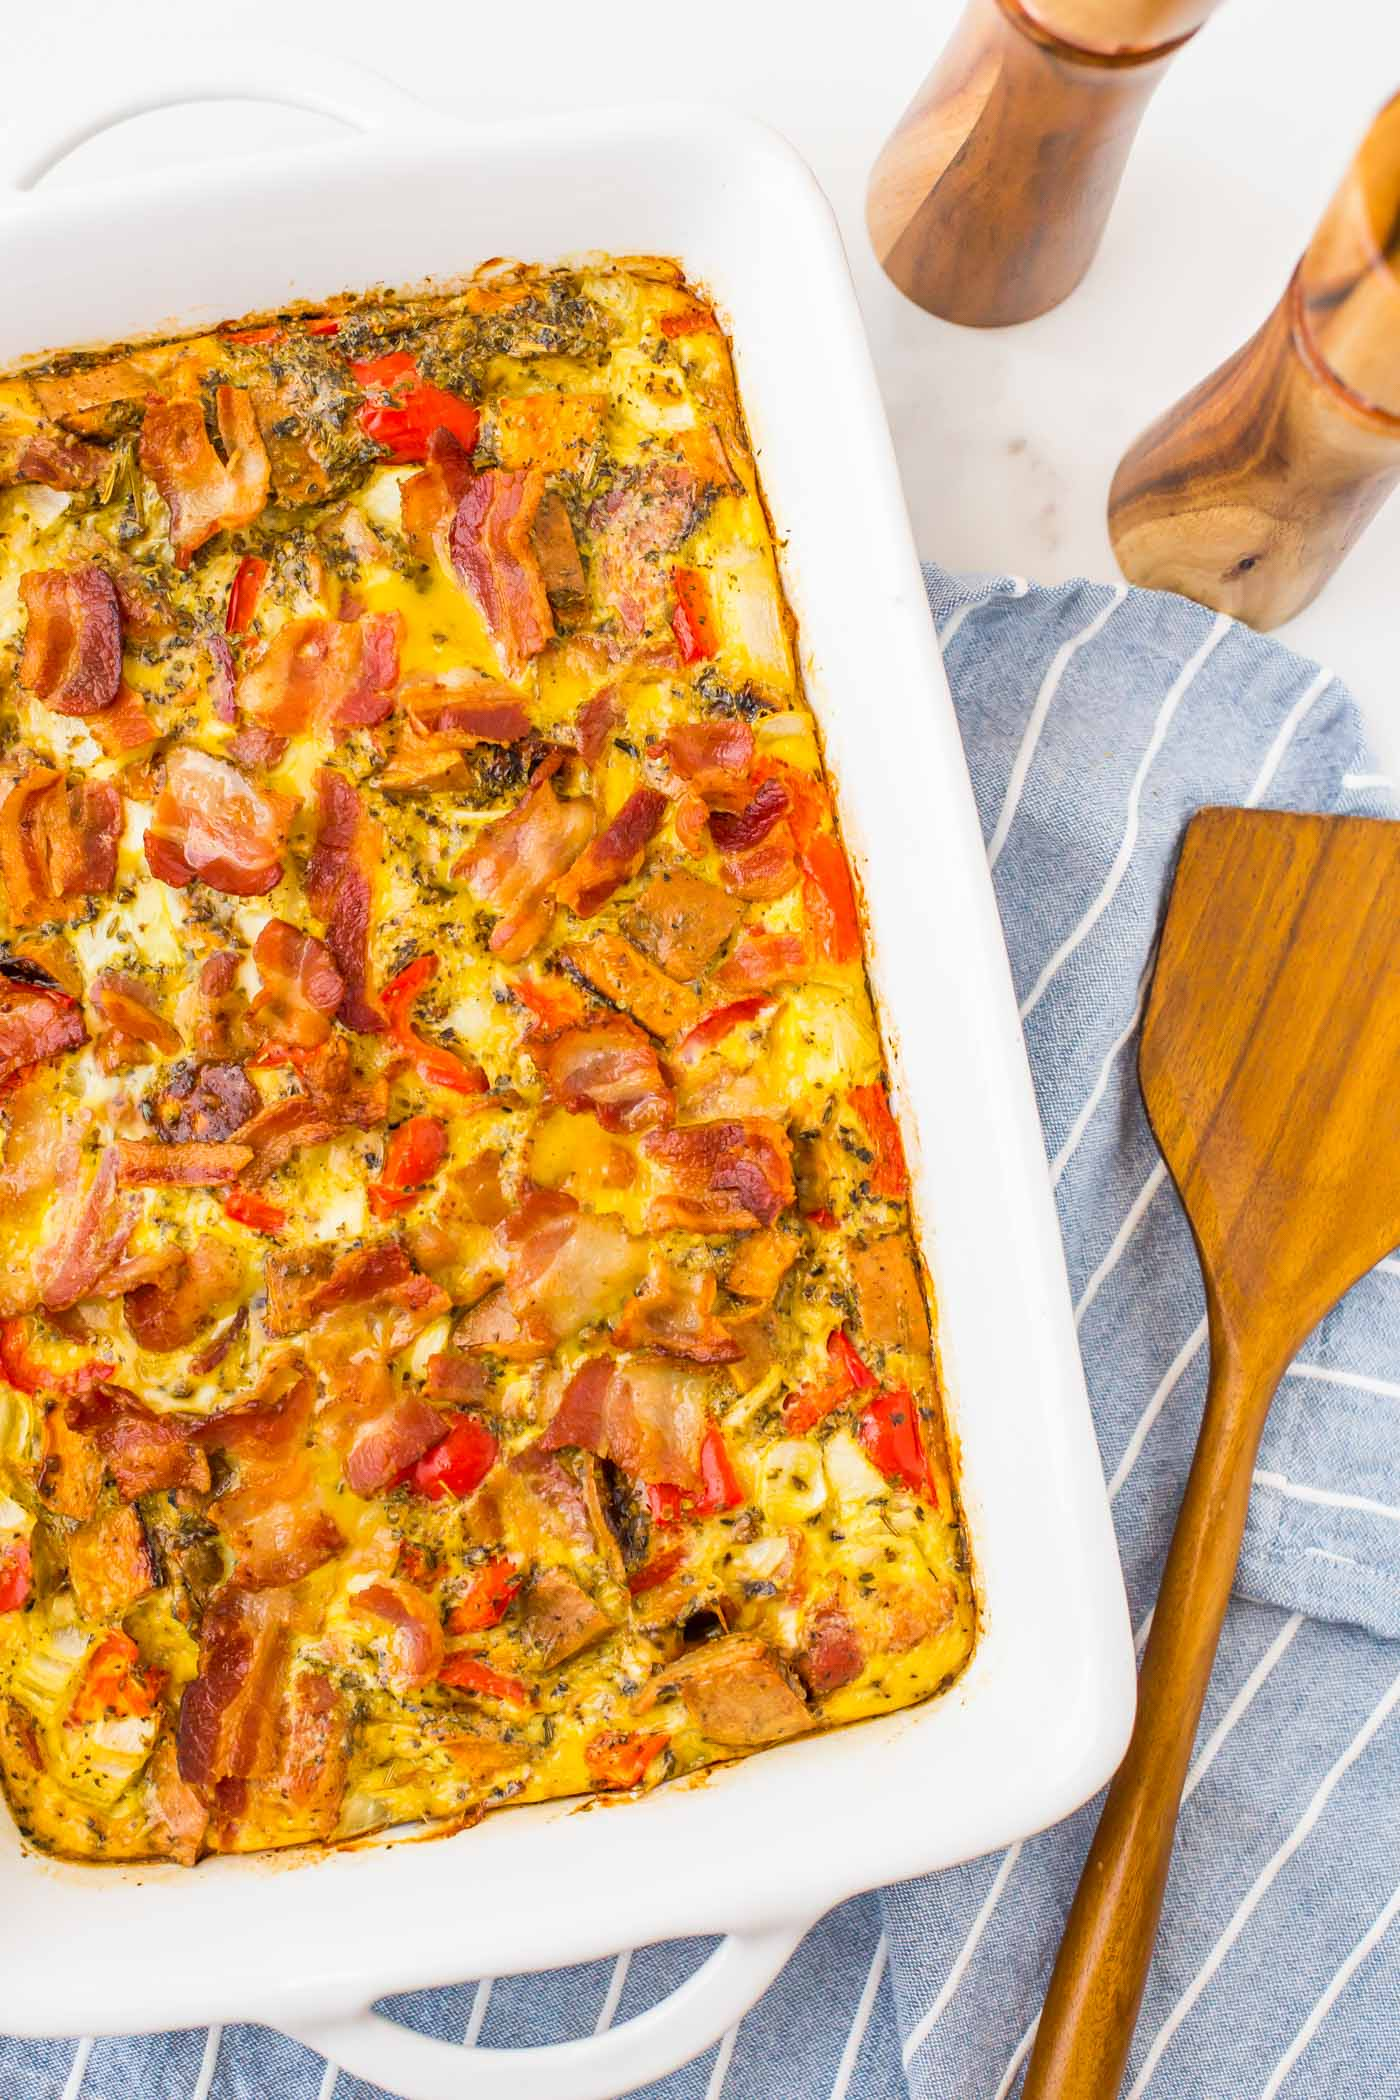 Breakfast casserole with bacon on top in white casserole dish on blue napkin with wooden spatula